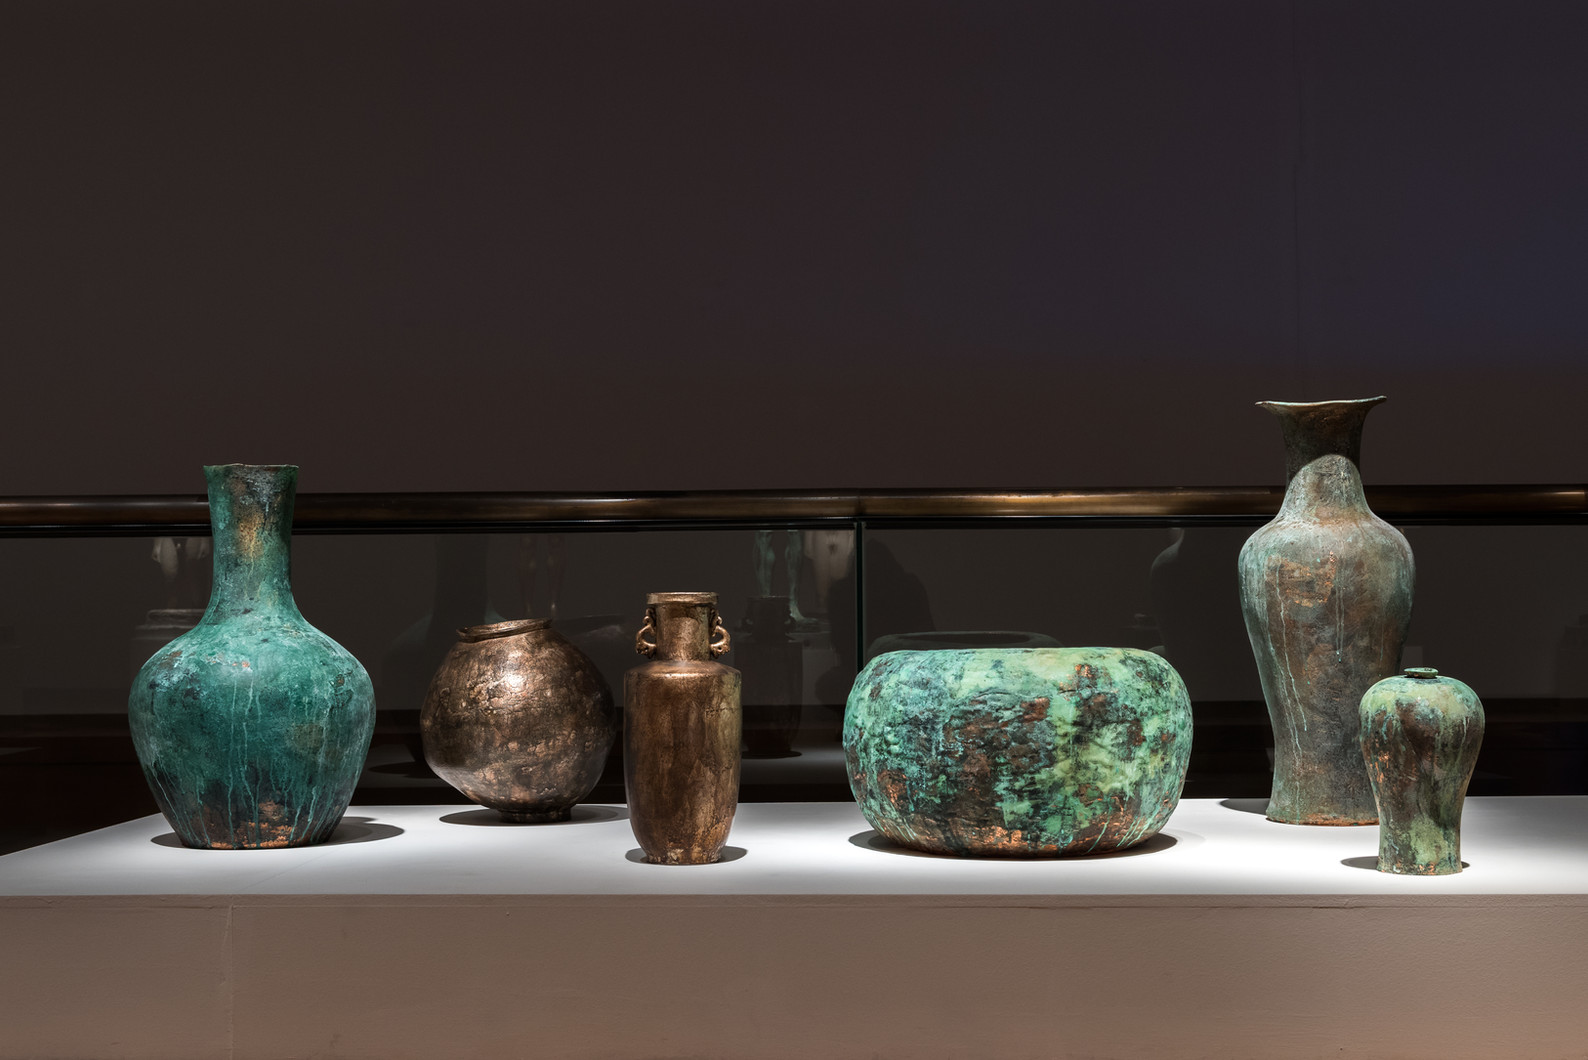 Installation view, Ancient Future, Wooyang Museum of Art